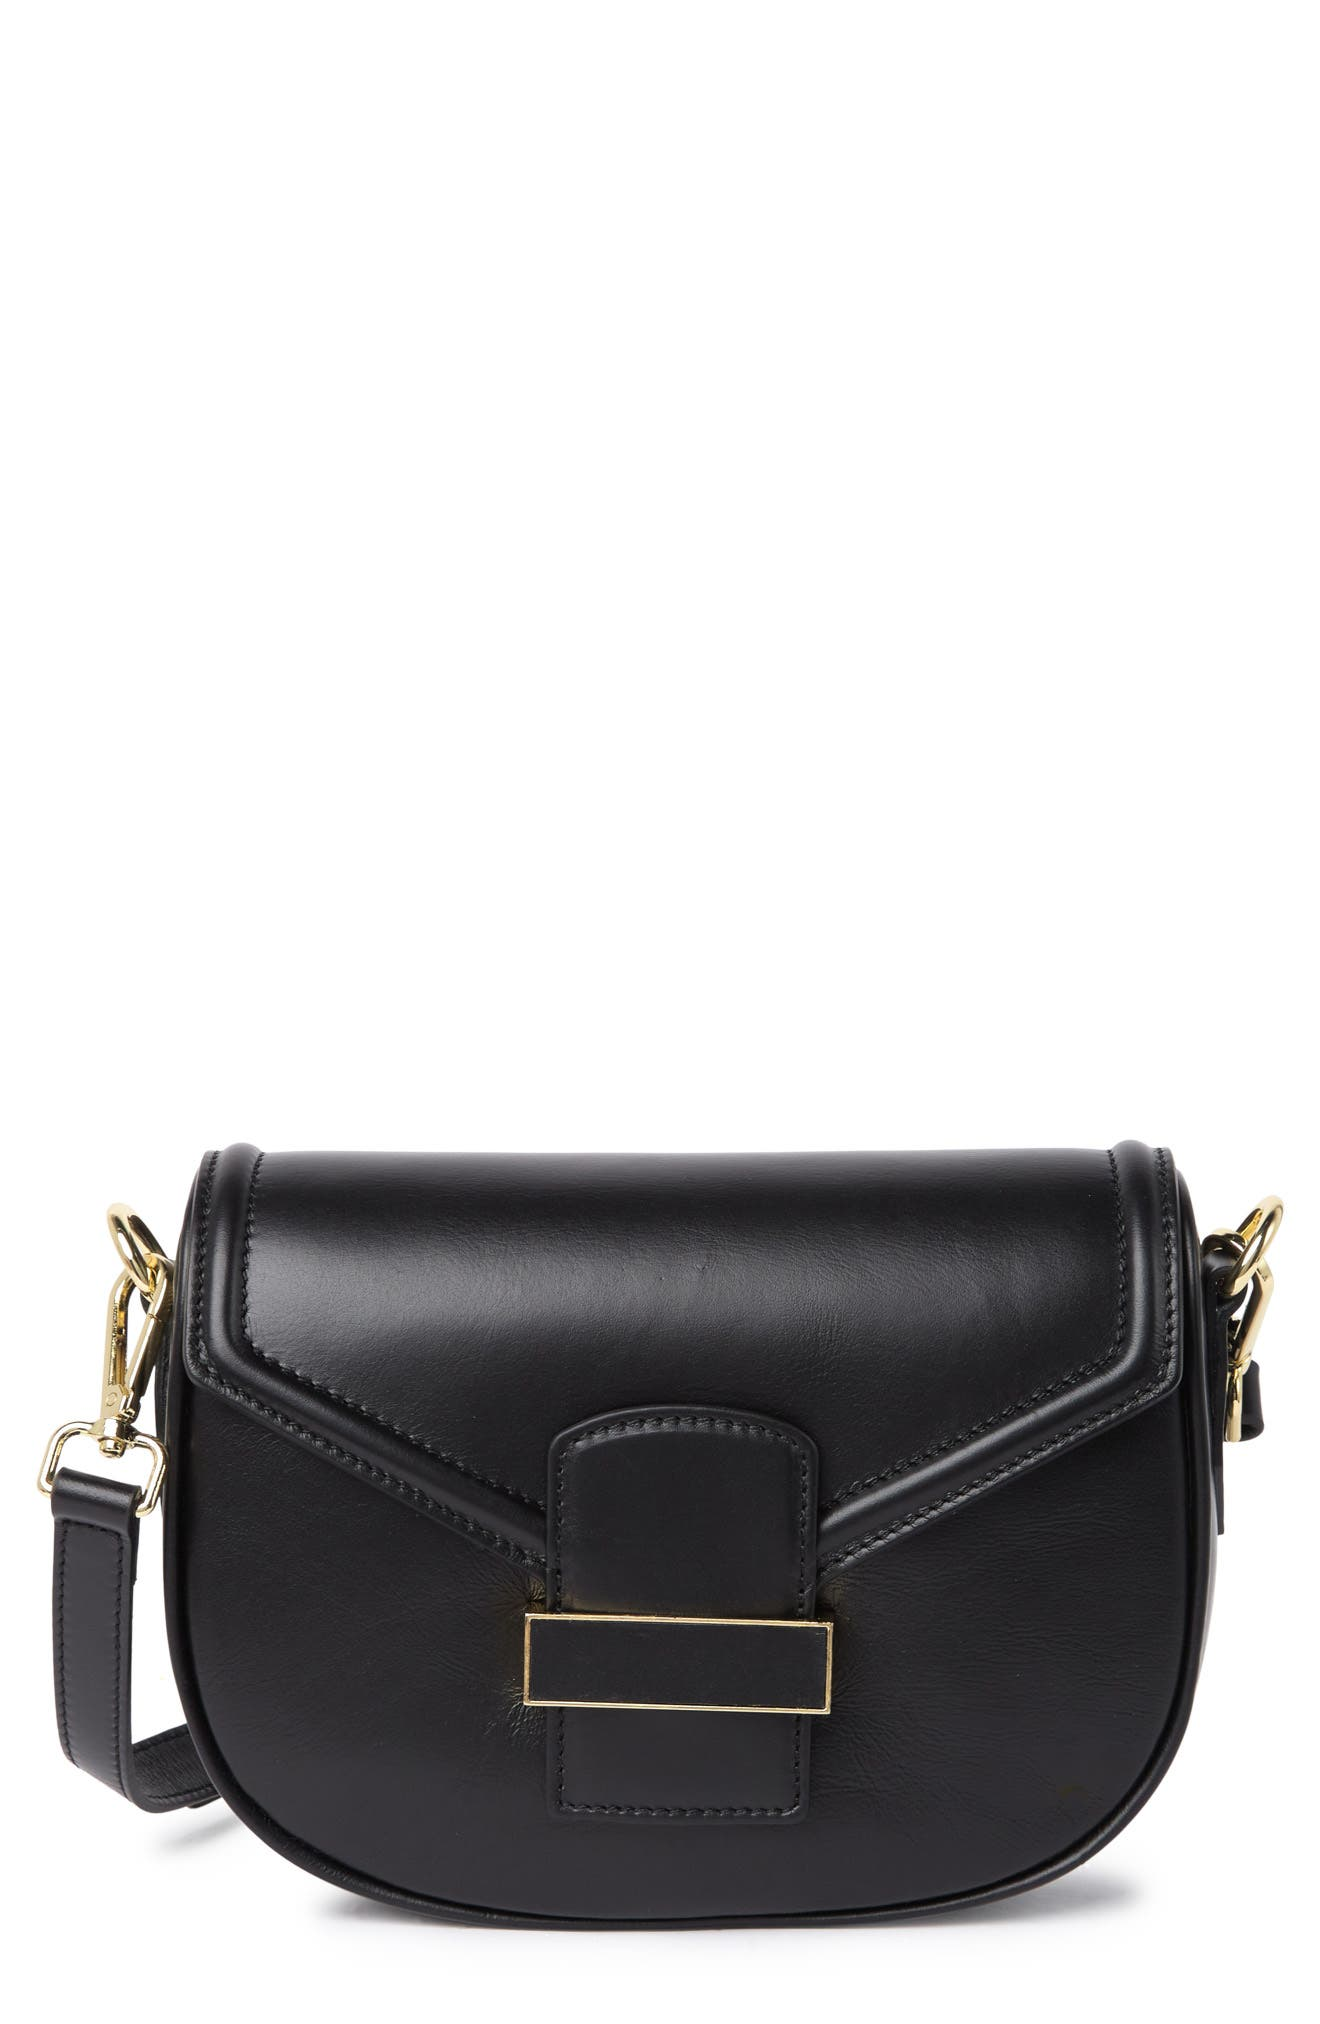 Massimo Castelli Sauvage Leather Crossbody Bag In Black At Nordstrom Rack